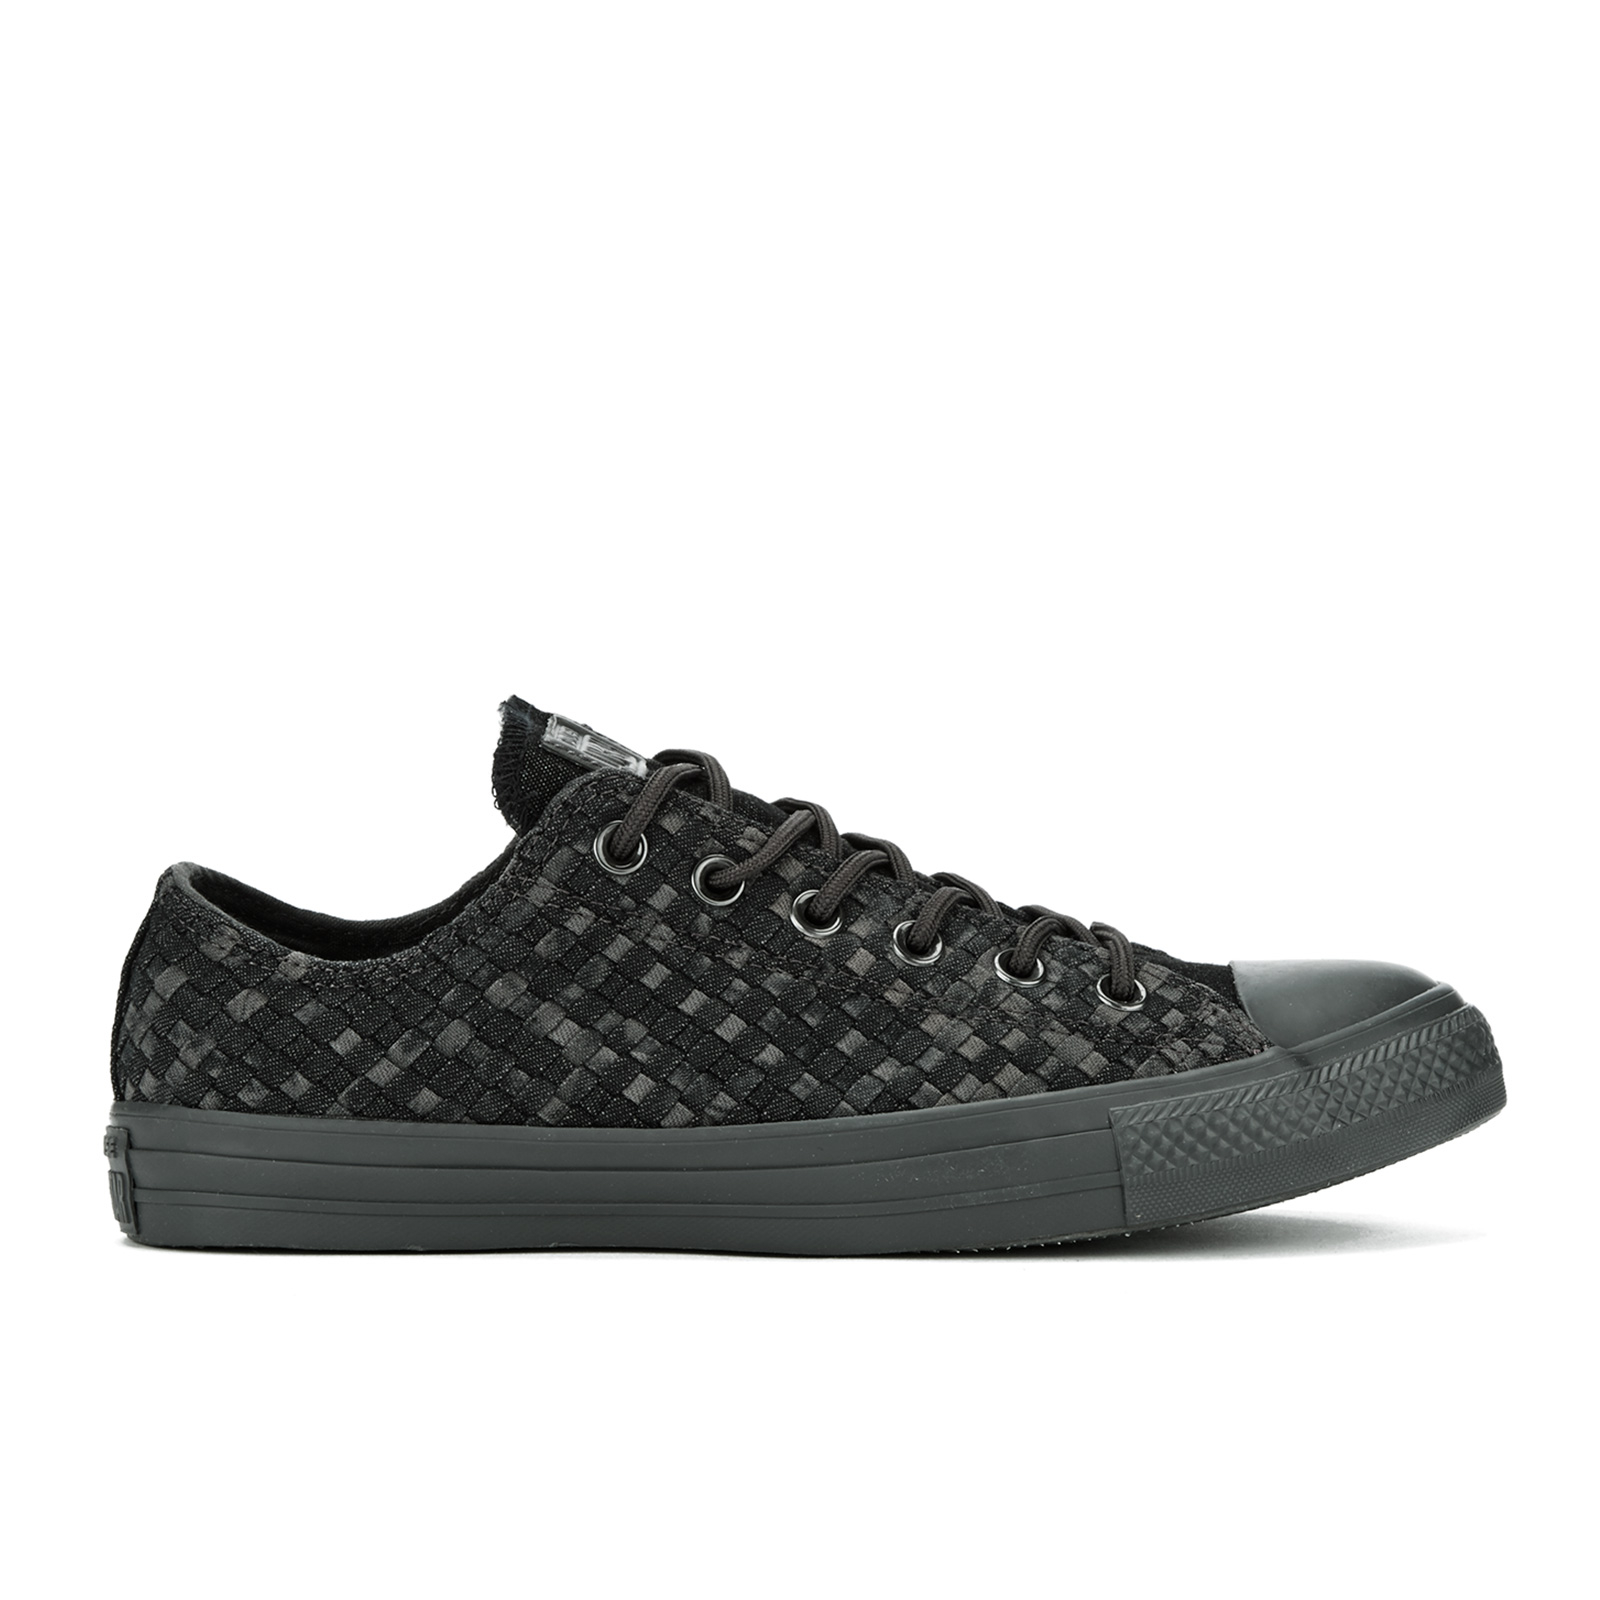 2546f4a6e63f Converse Men s Chuck Taylor All Star Denim Woven Ox Trainers - Black Storm  Wind Storm Wind - Free UK Delivery over £50